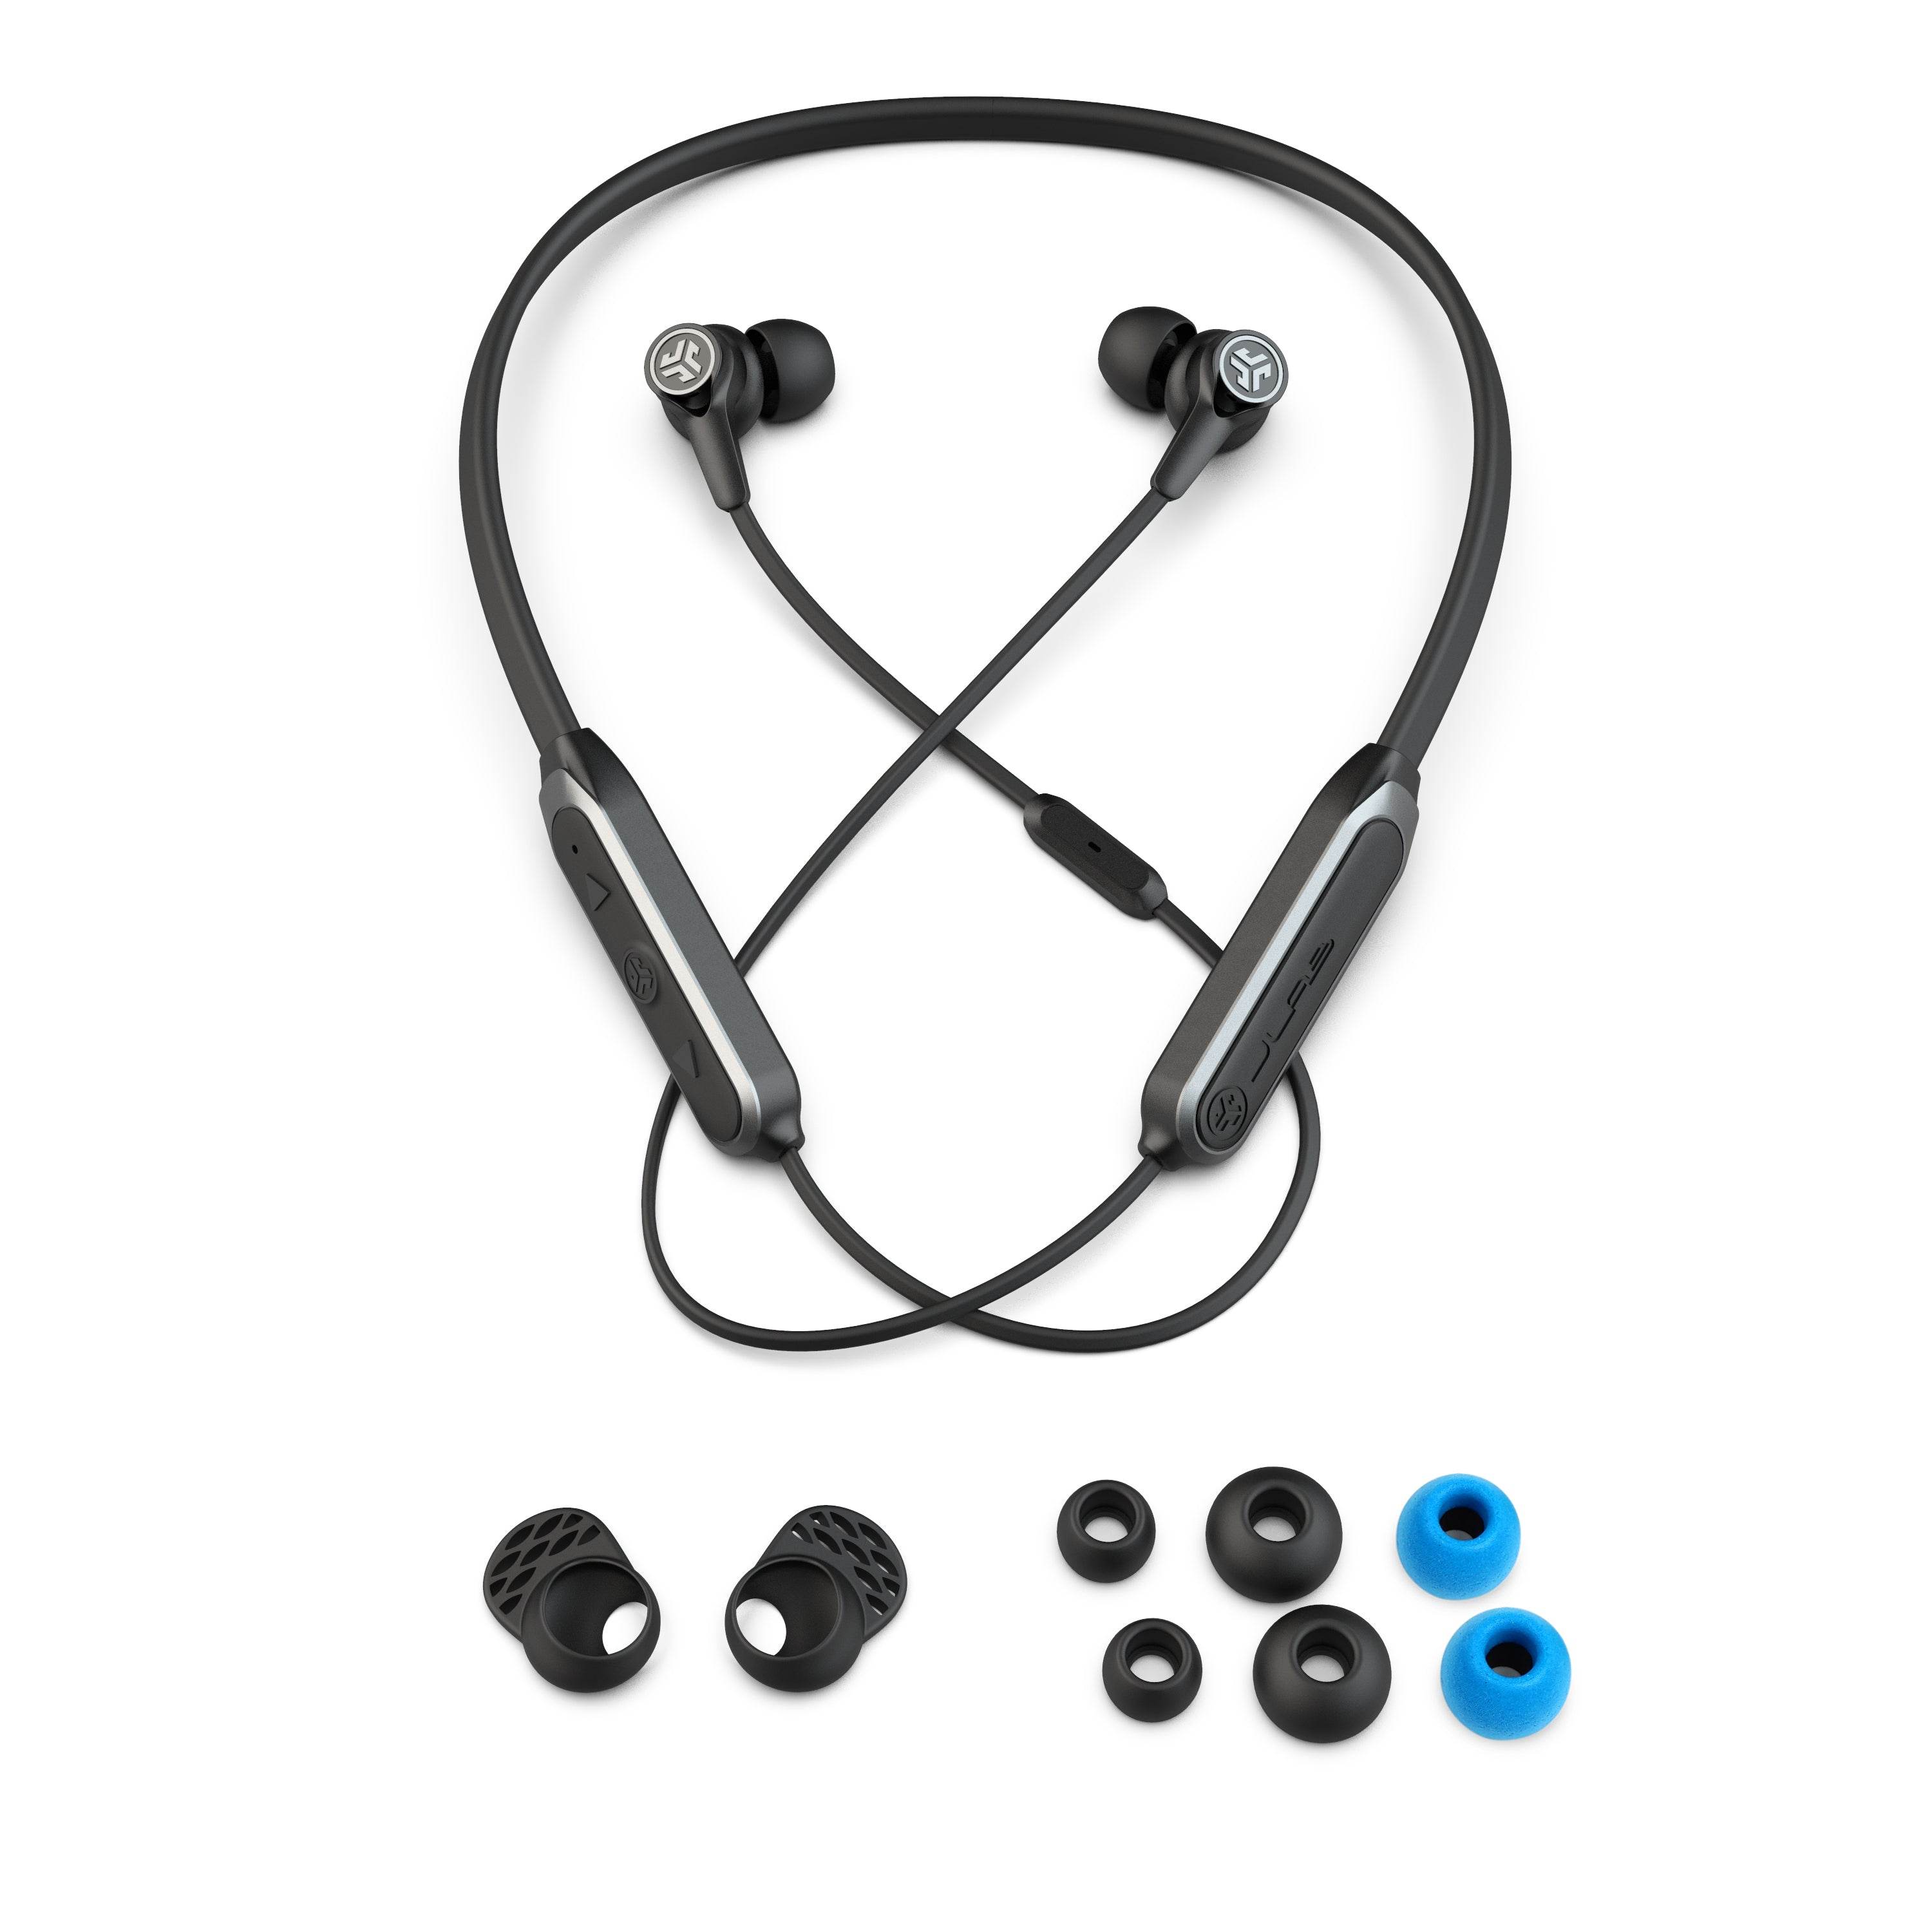 Black Epic Executive Wireless Earbud Accessories with Neckband, Cush Fins, Ear Tips, AUX Adaptor, and Traveling Case